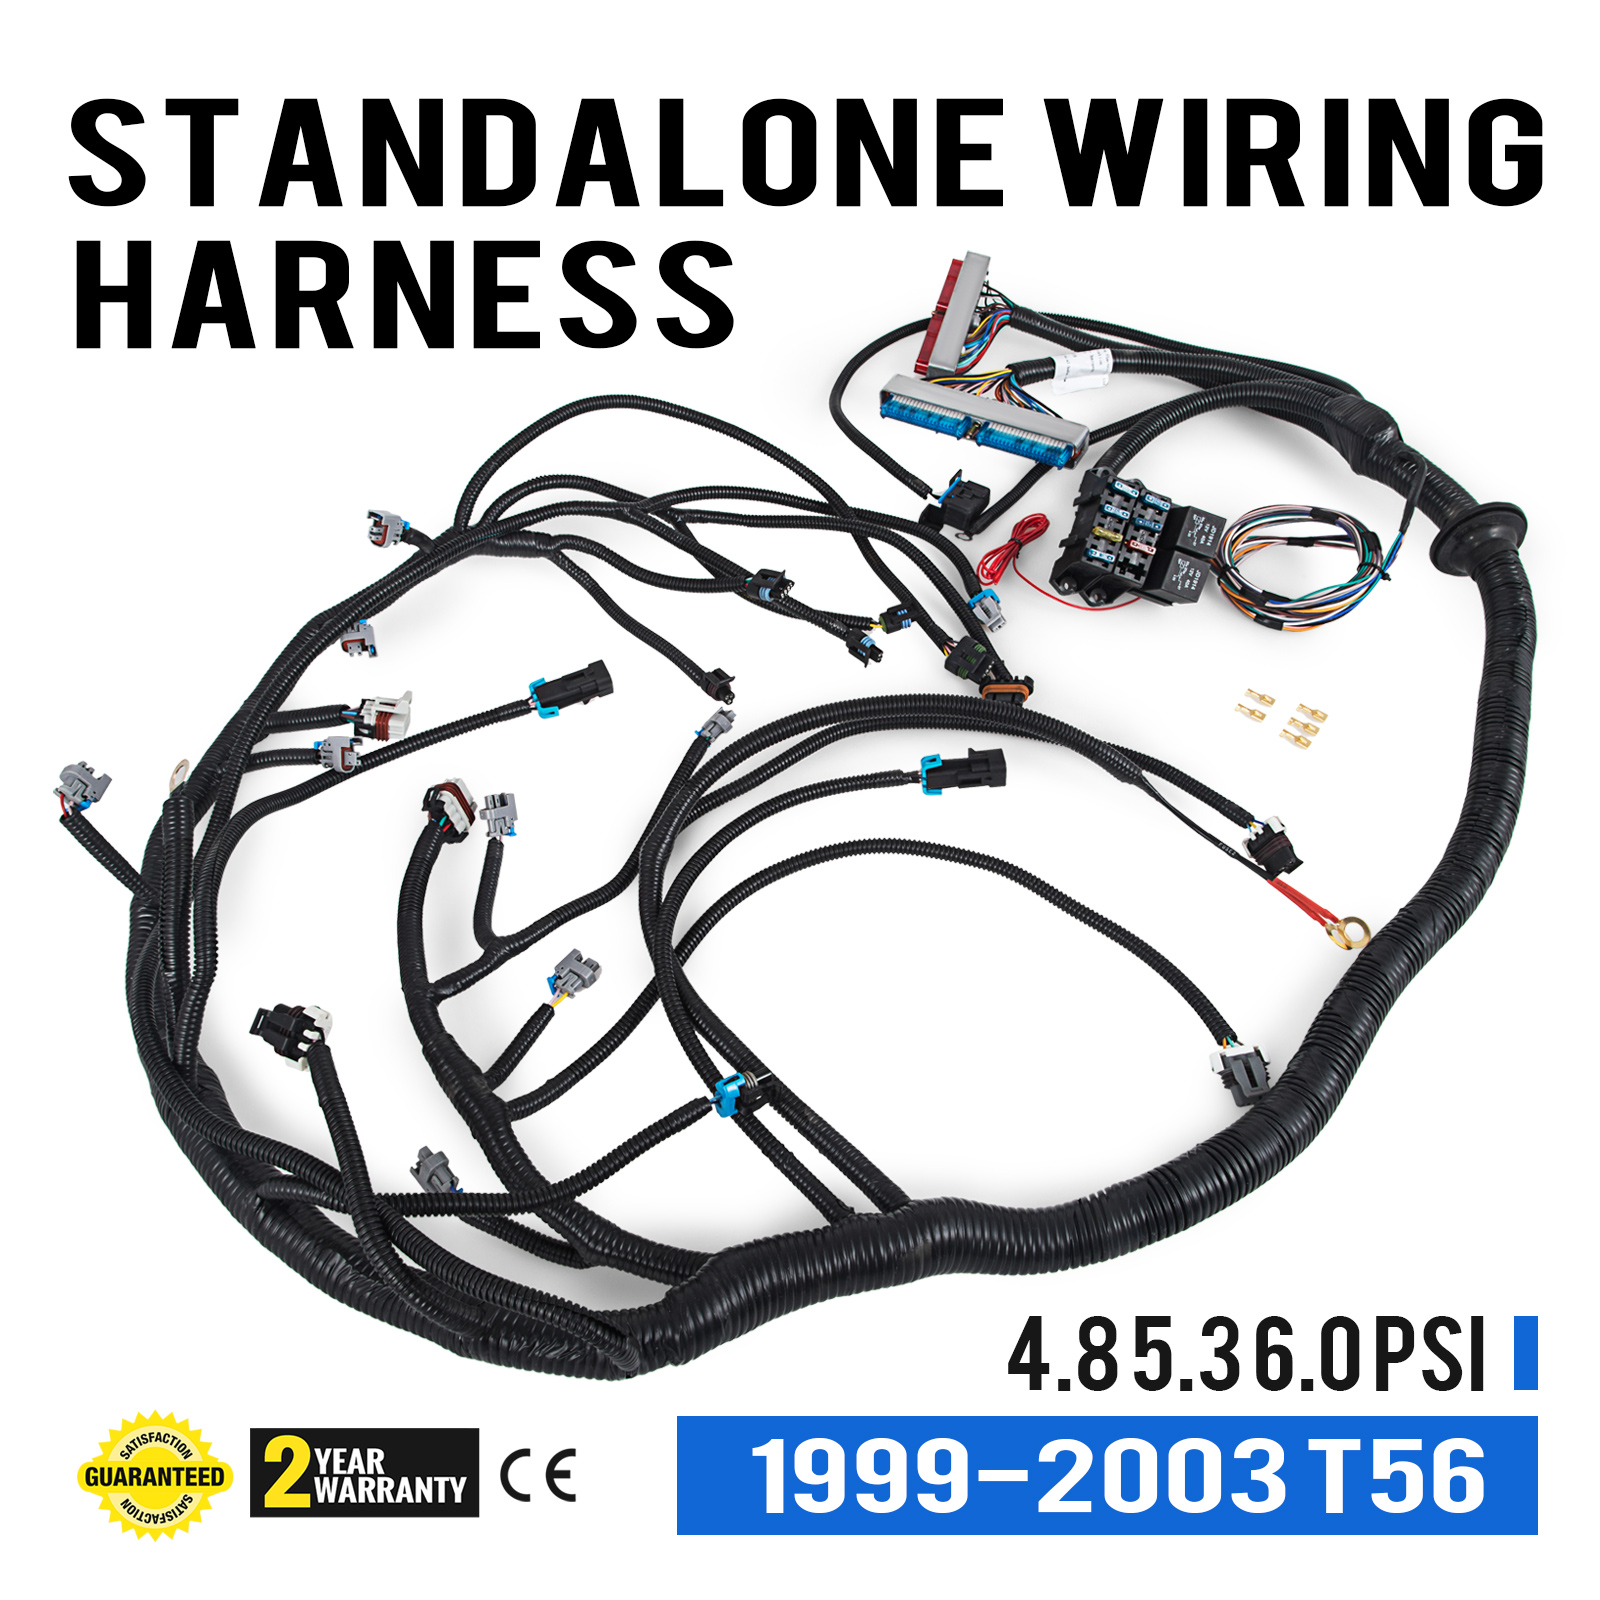 Nice 1999 2003 Dbc Ls1 Standalone Wiring Harness With T56 Cxcxz003491524190198